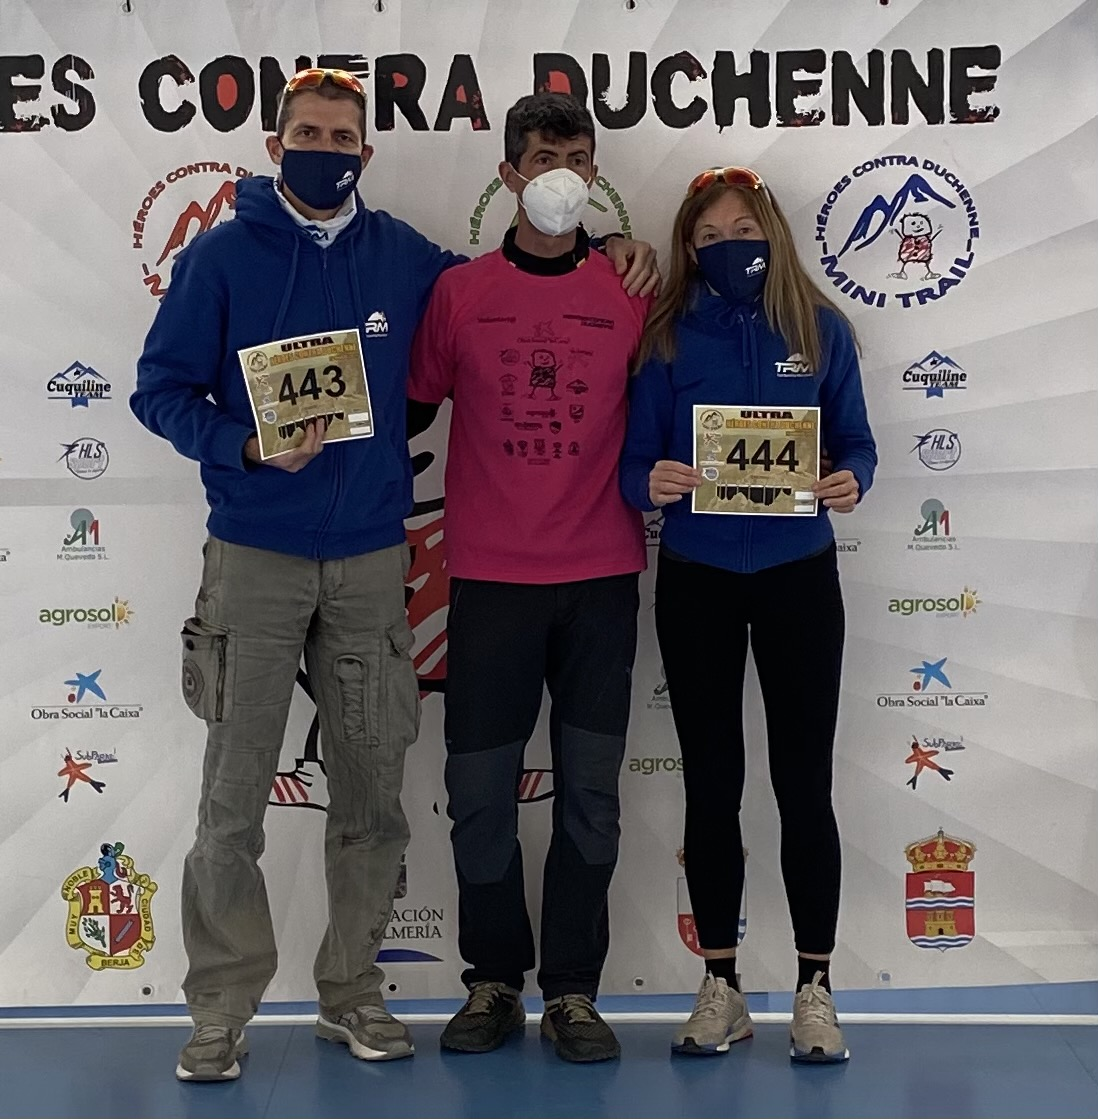 I COLORI DEL TRM TEAM ALL'ULTRA HEROES CONTRA DUCHENNE